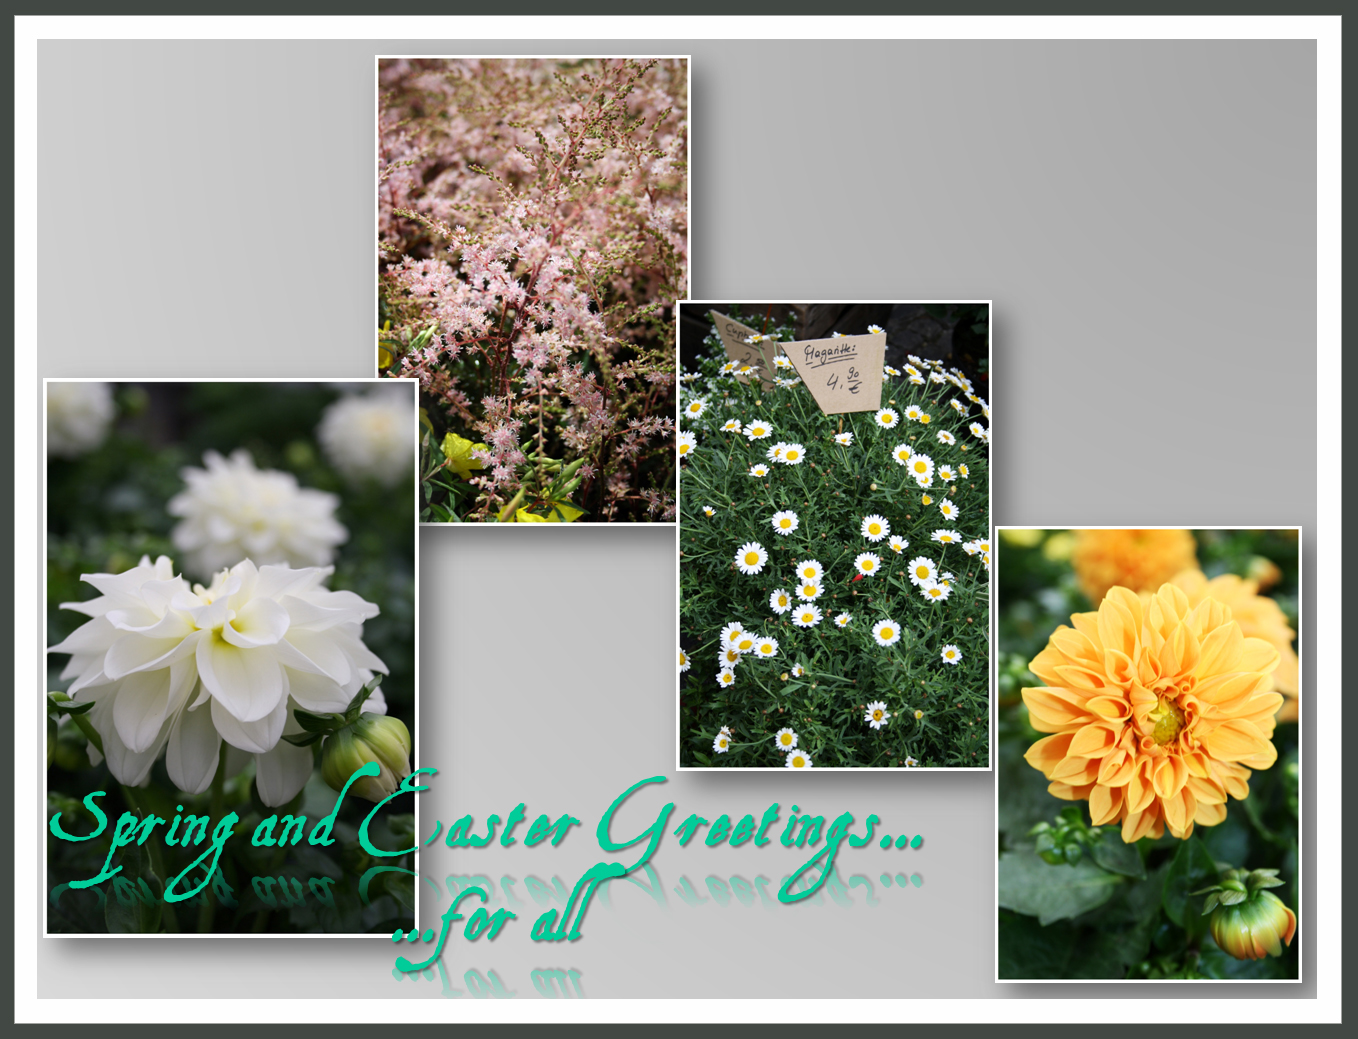 Spring & Easter Greetings